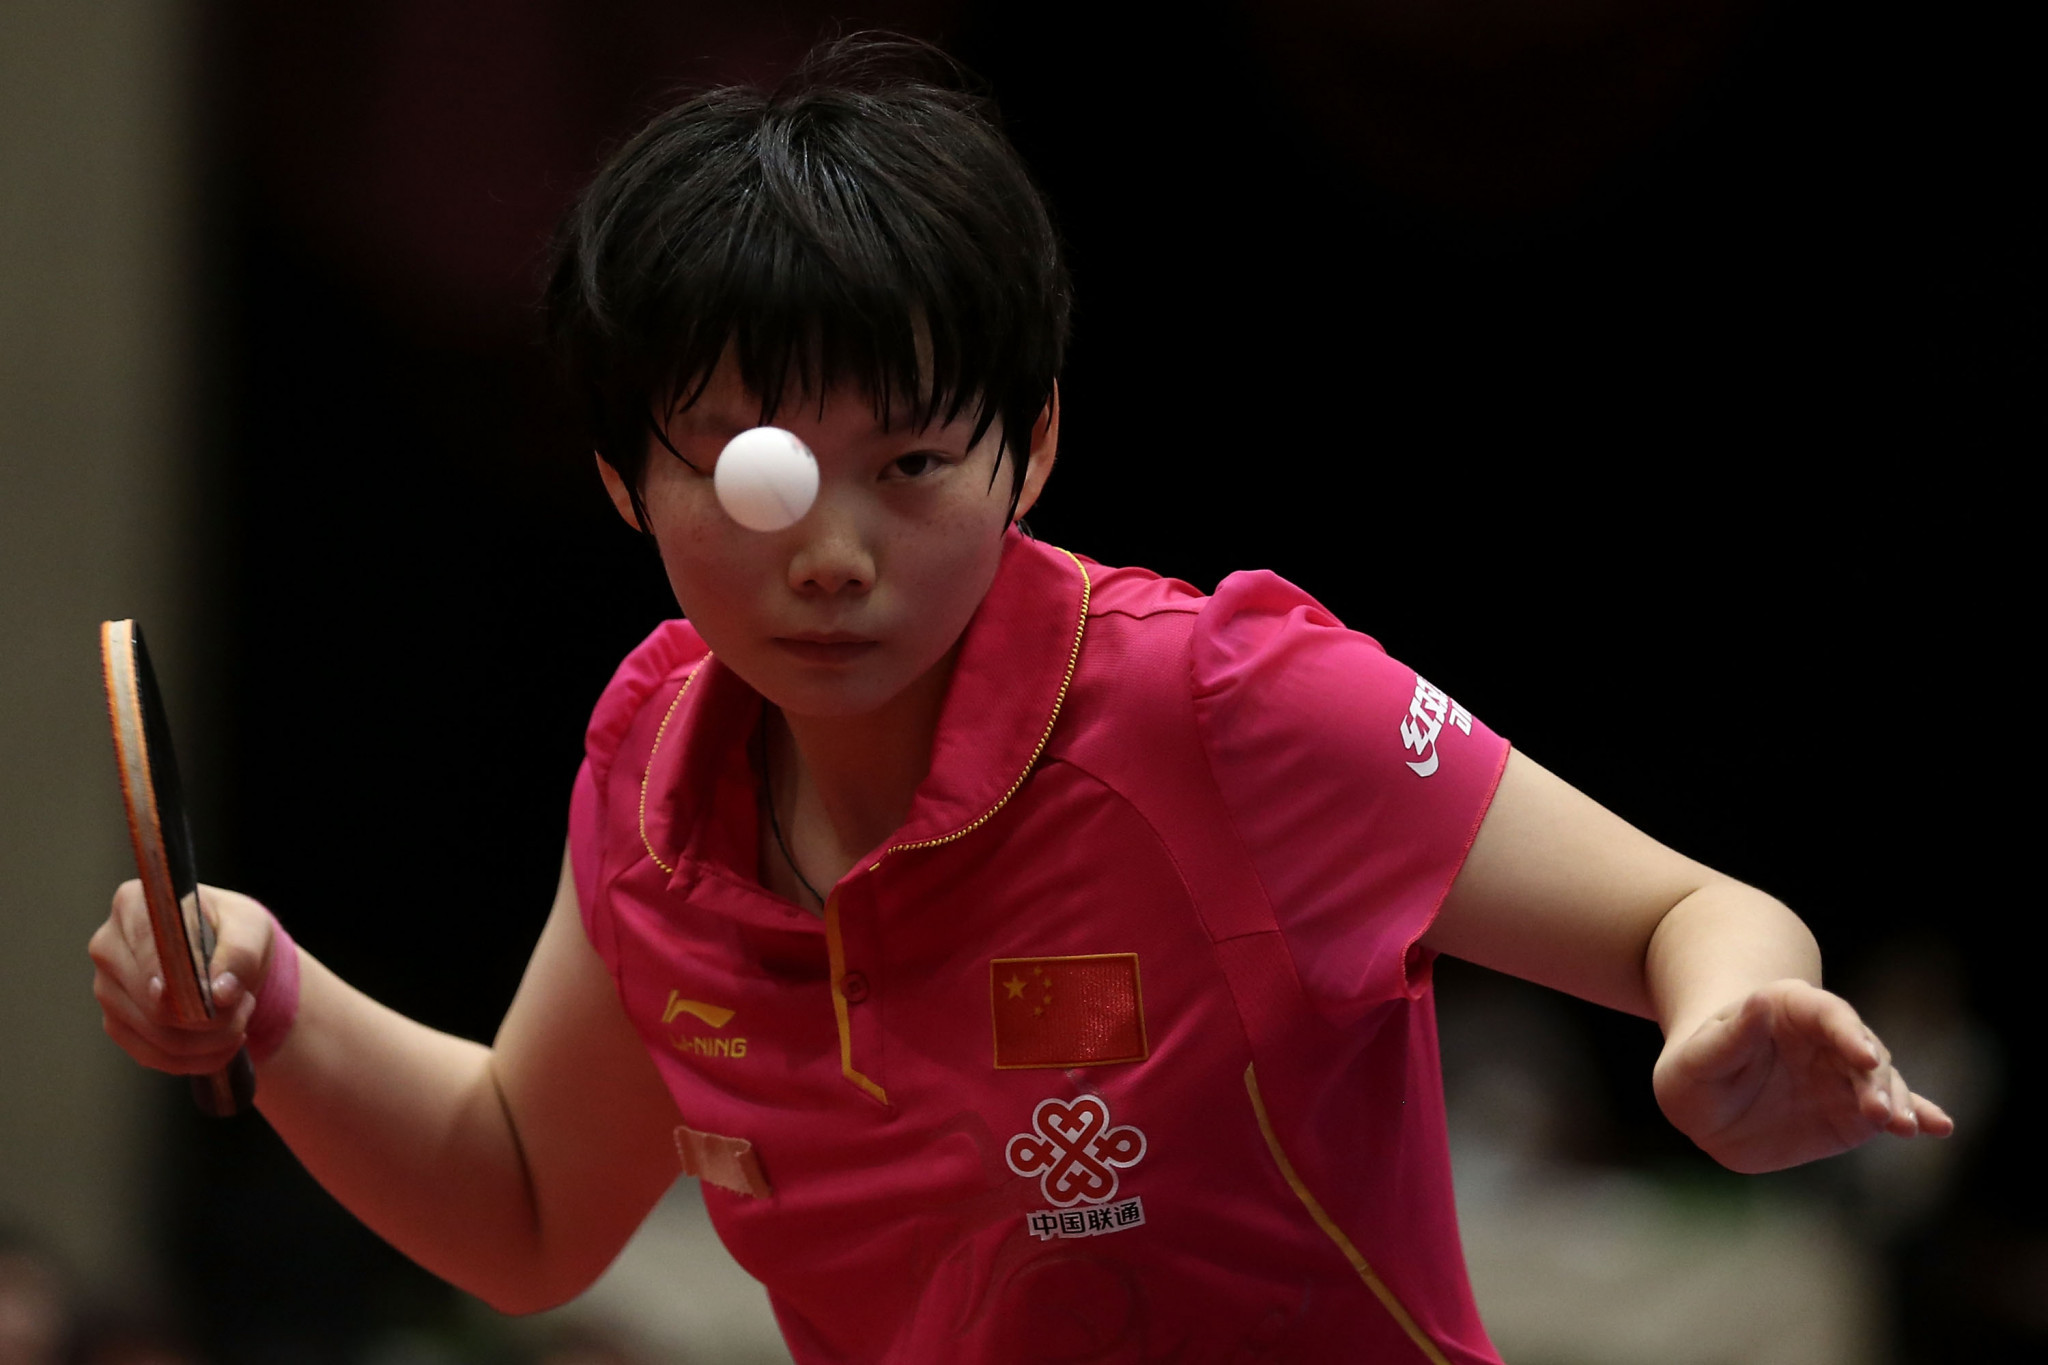 China's He Zhuojia was among those to earn a place in the main draw ©Getty Images